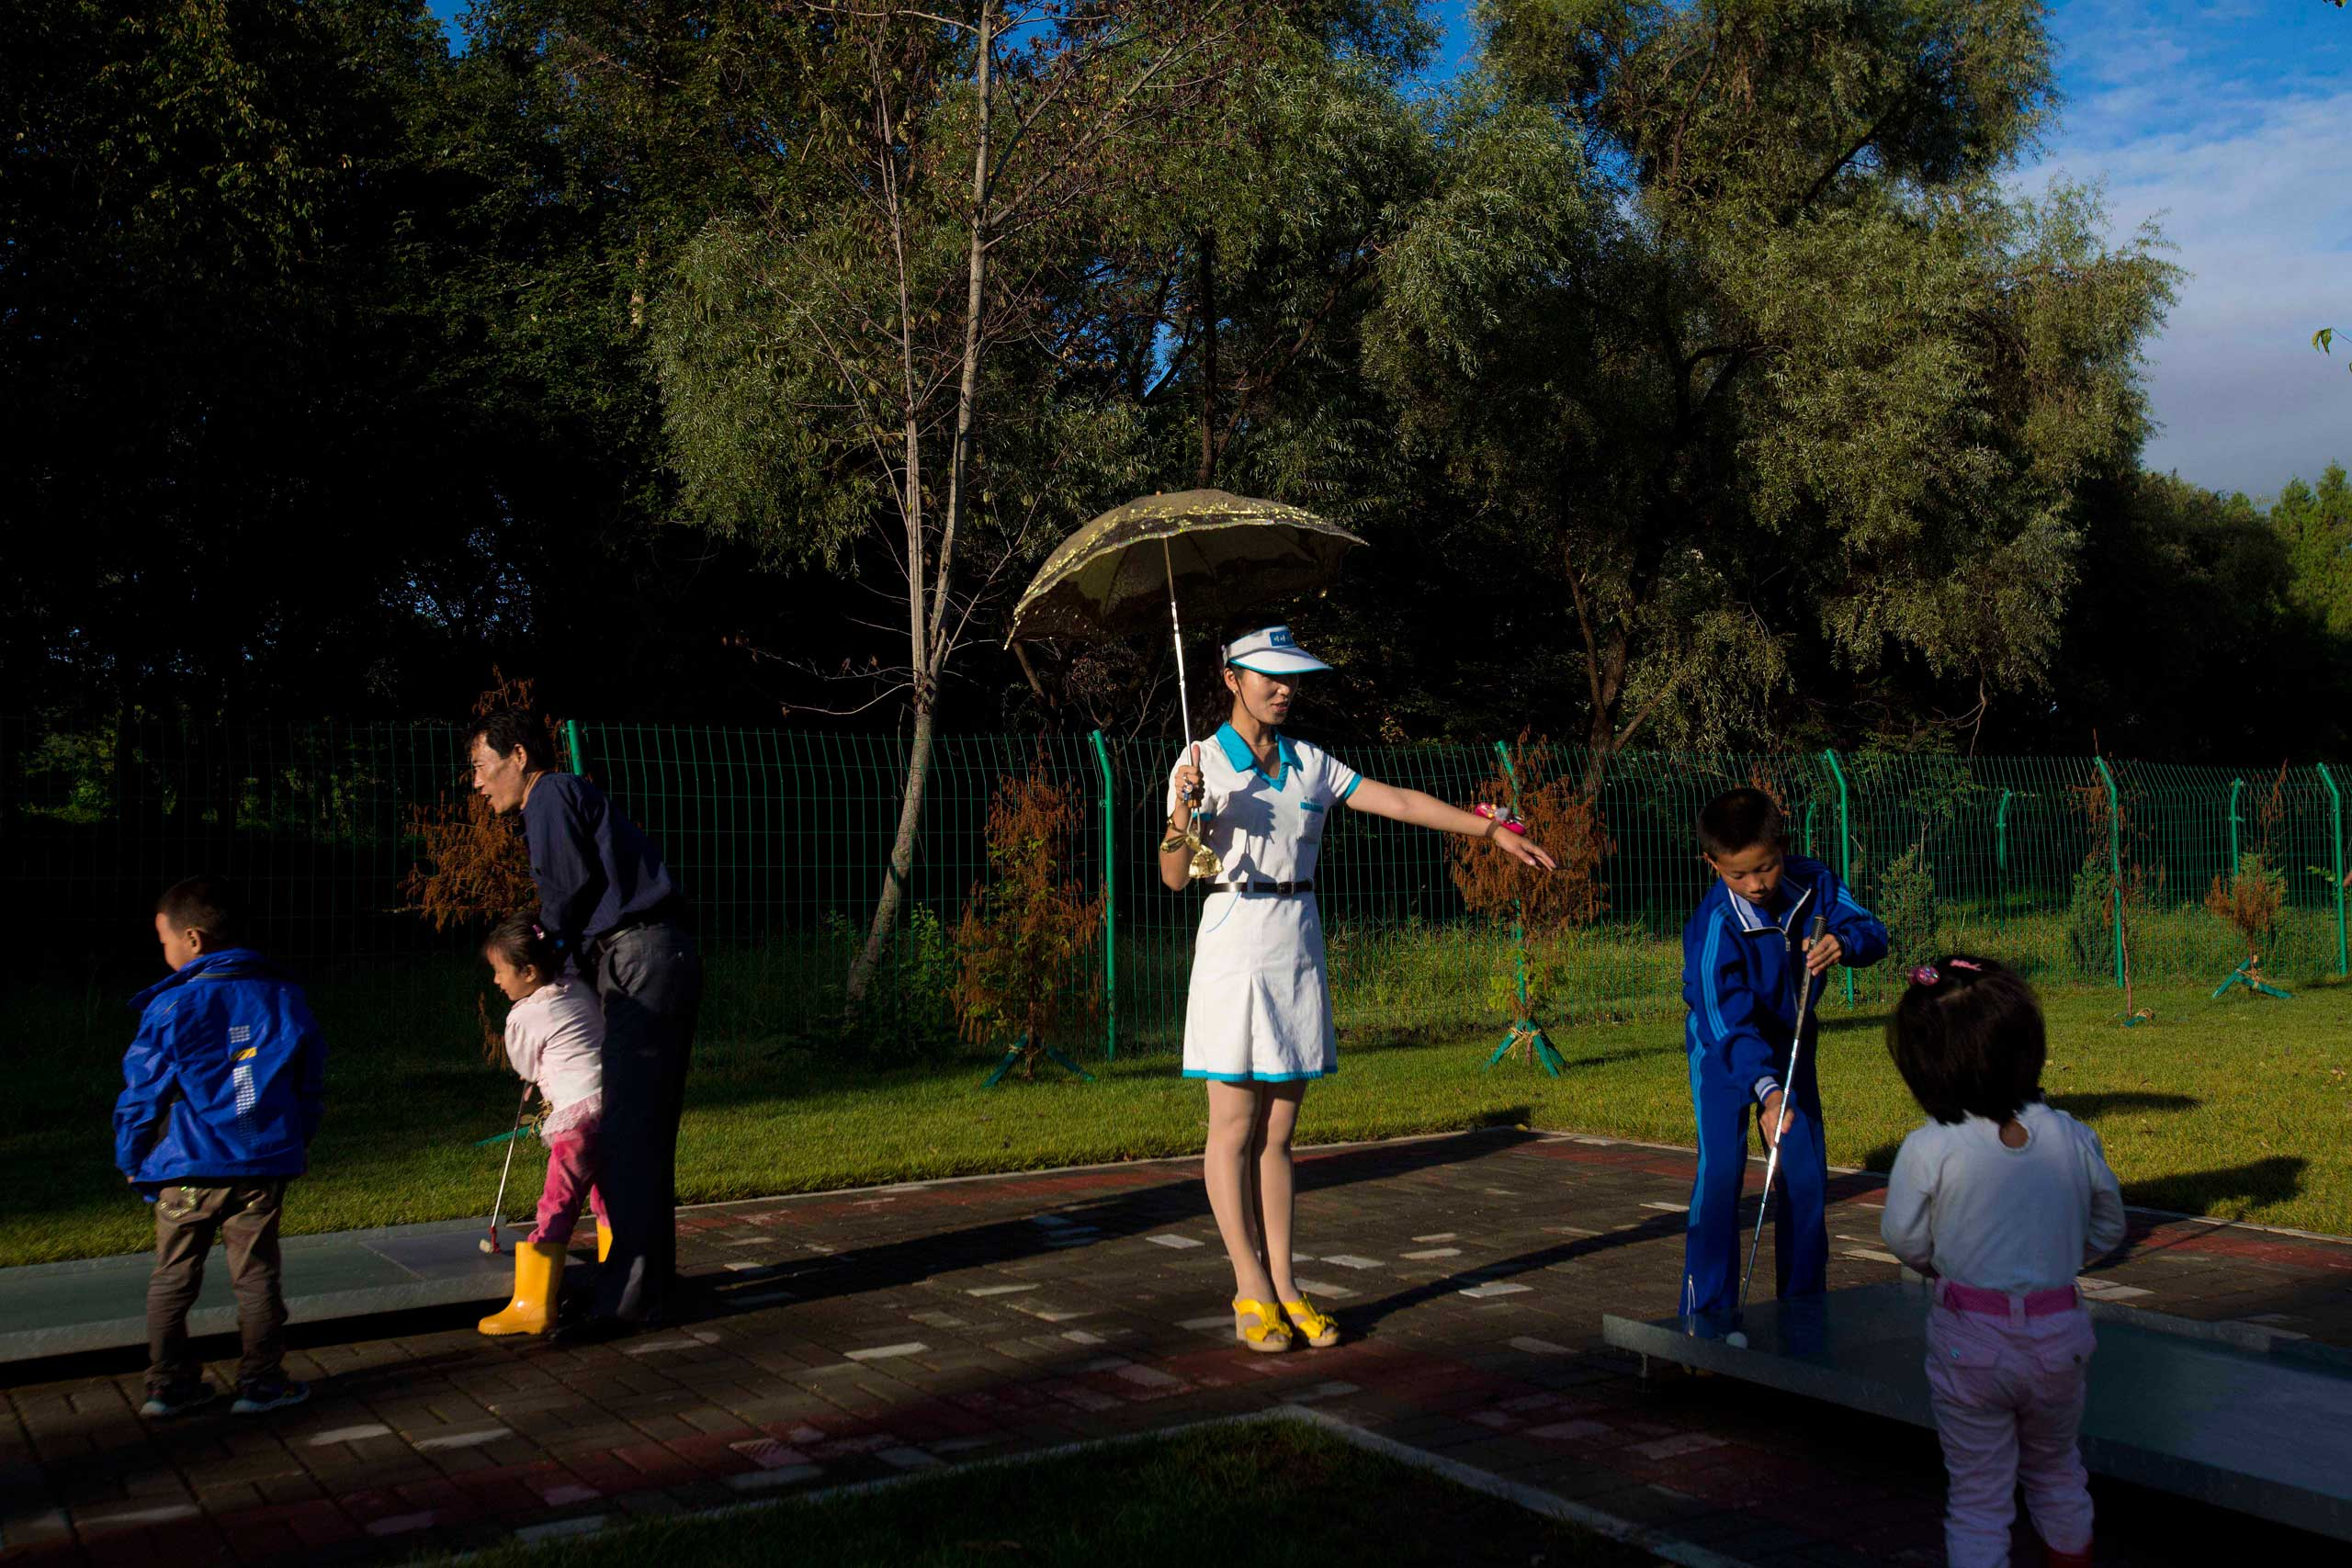 Sept. 8, 2012. A North Korean woman working at a miniature golf facility give guidance to young players in Pyongyang, North Korea.